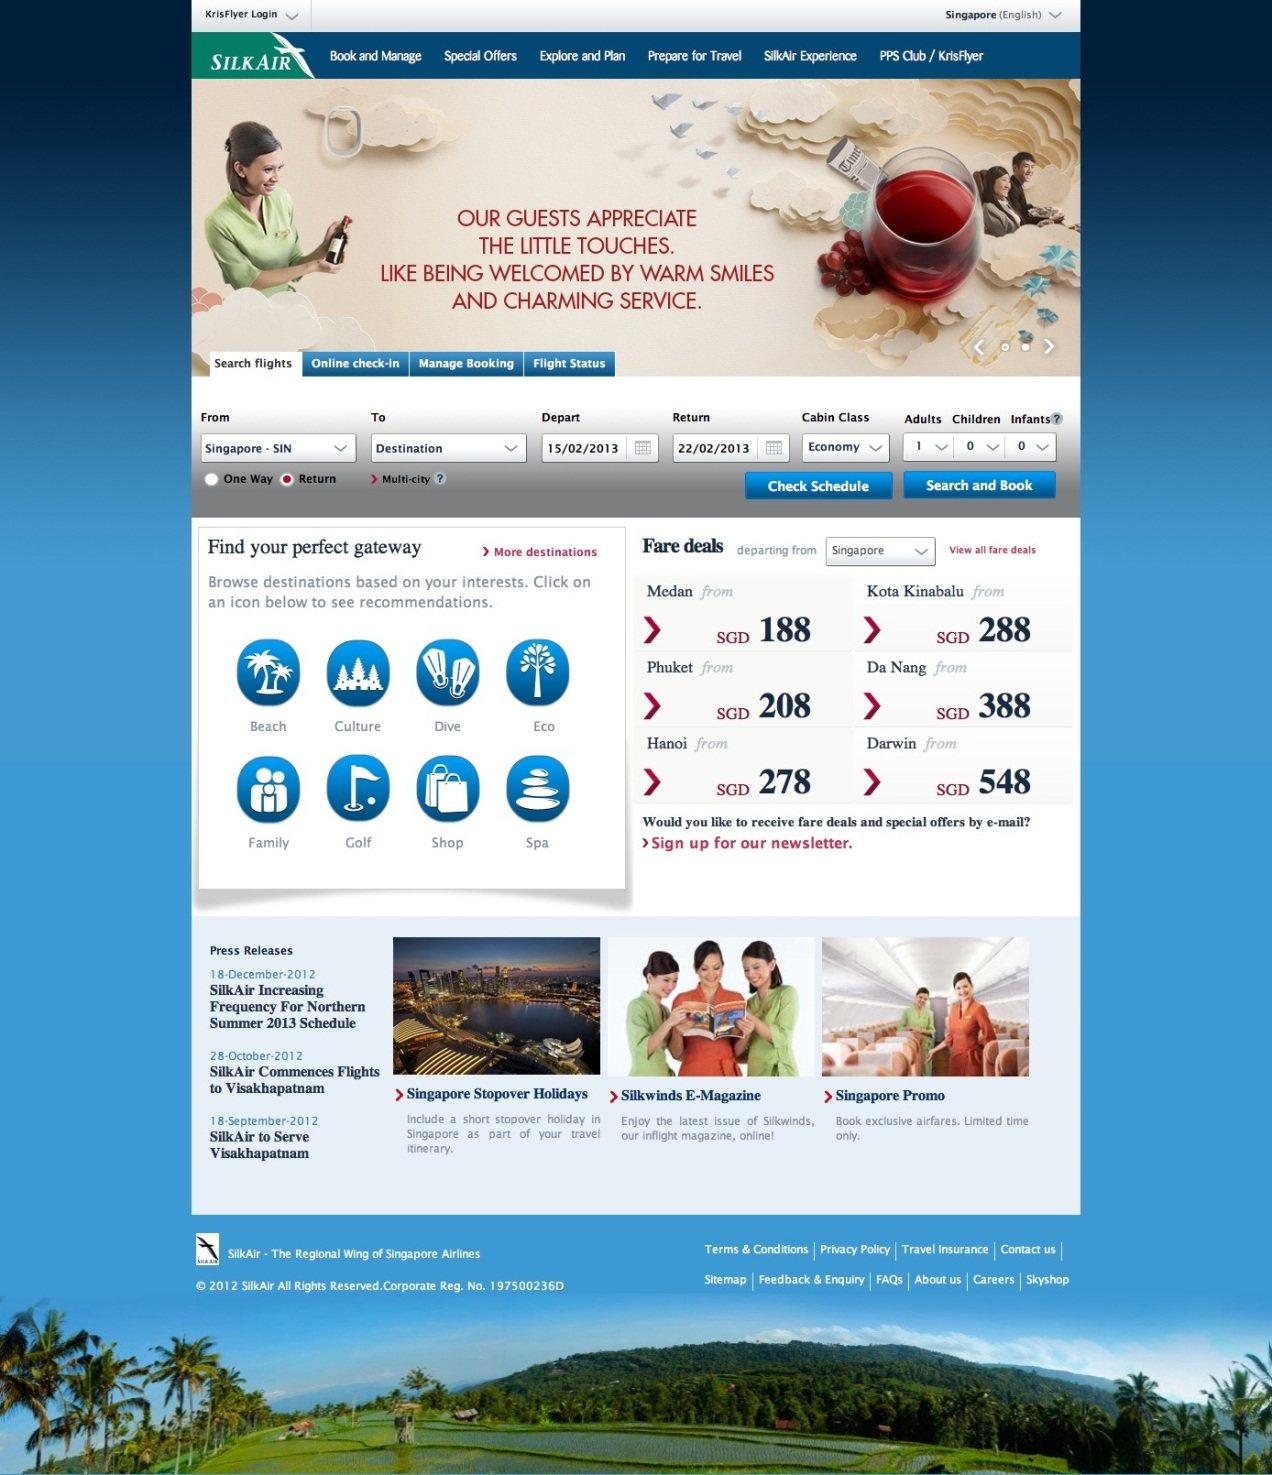 Live homepage as at Feb 2013, featuring a single-line flight search form, destination information, and browsing by specific interests.